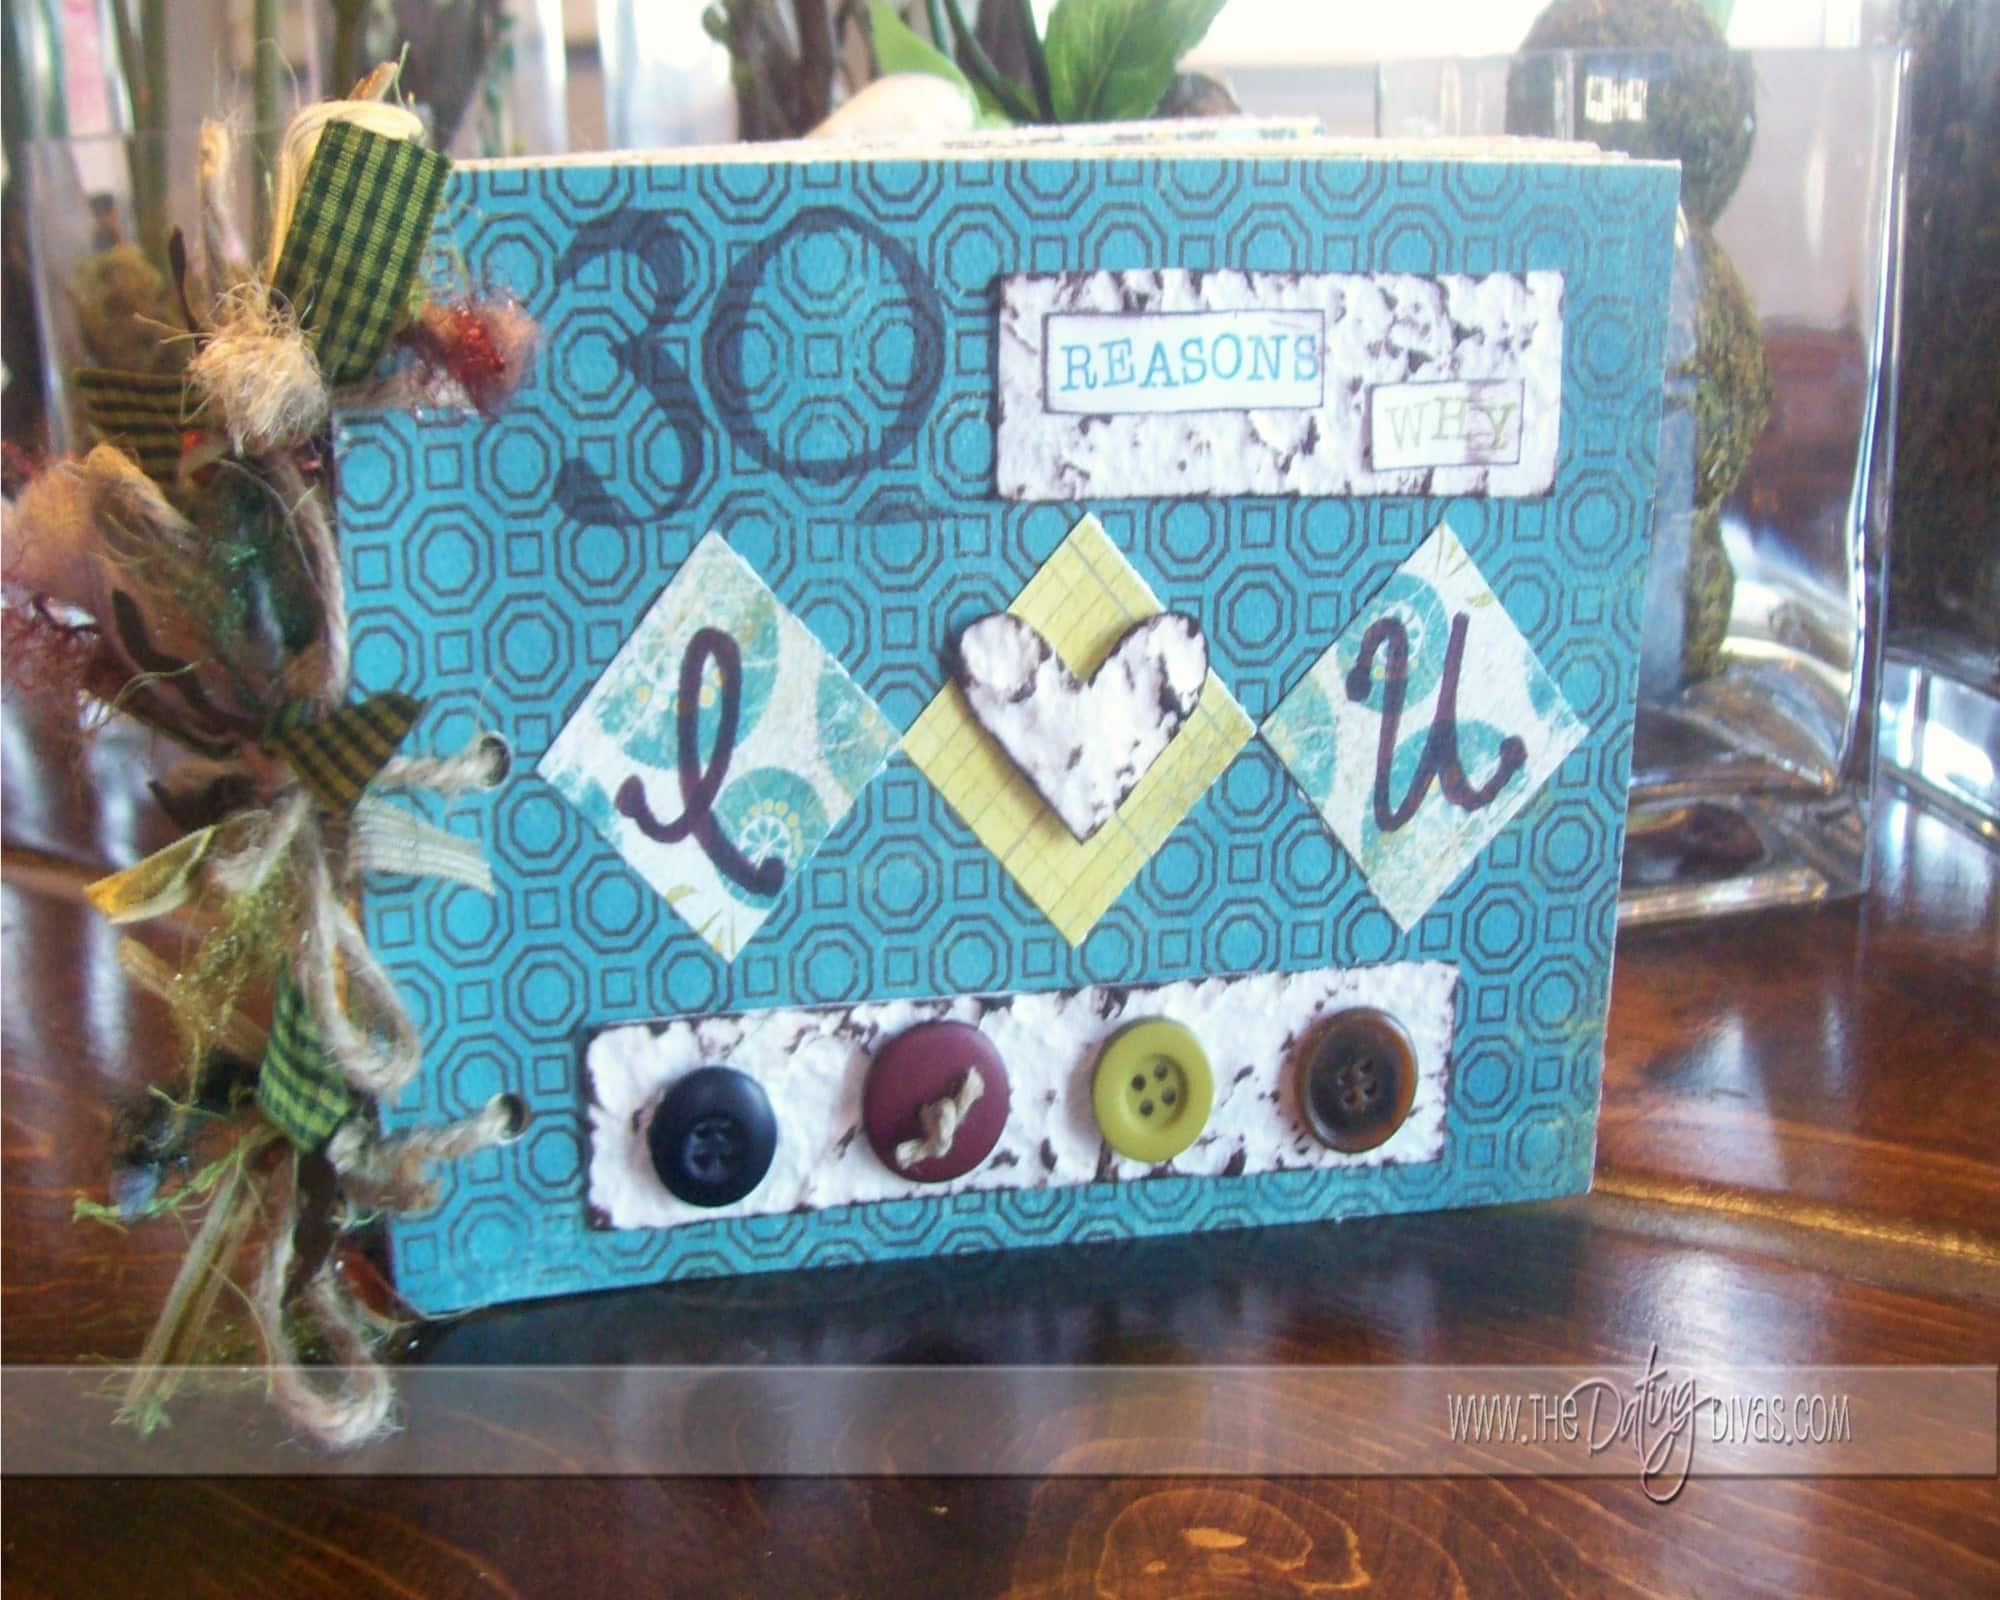 How to scrapbook a box - Alright